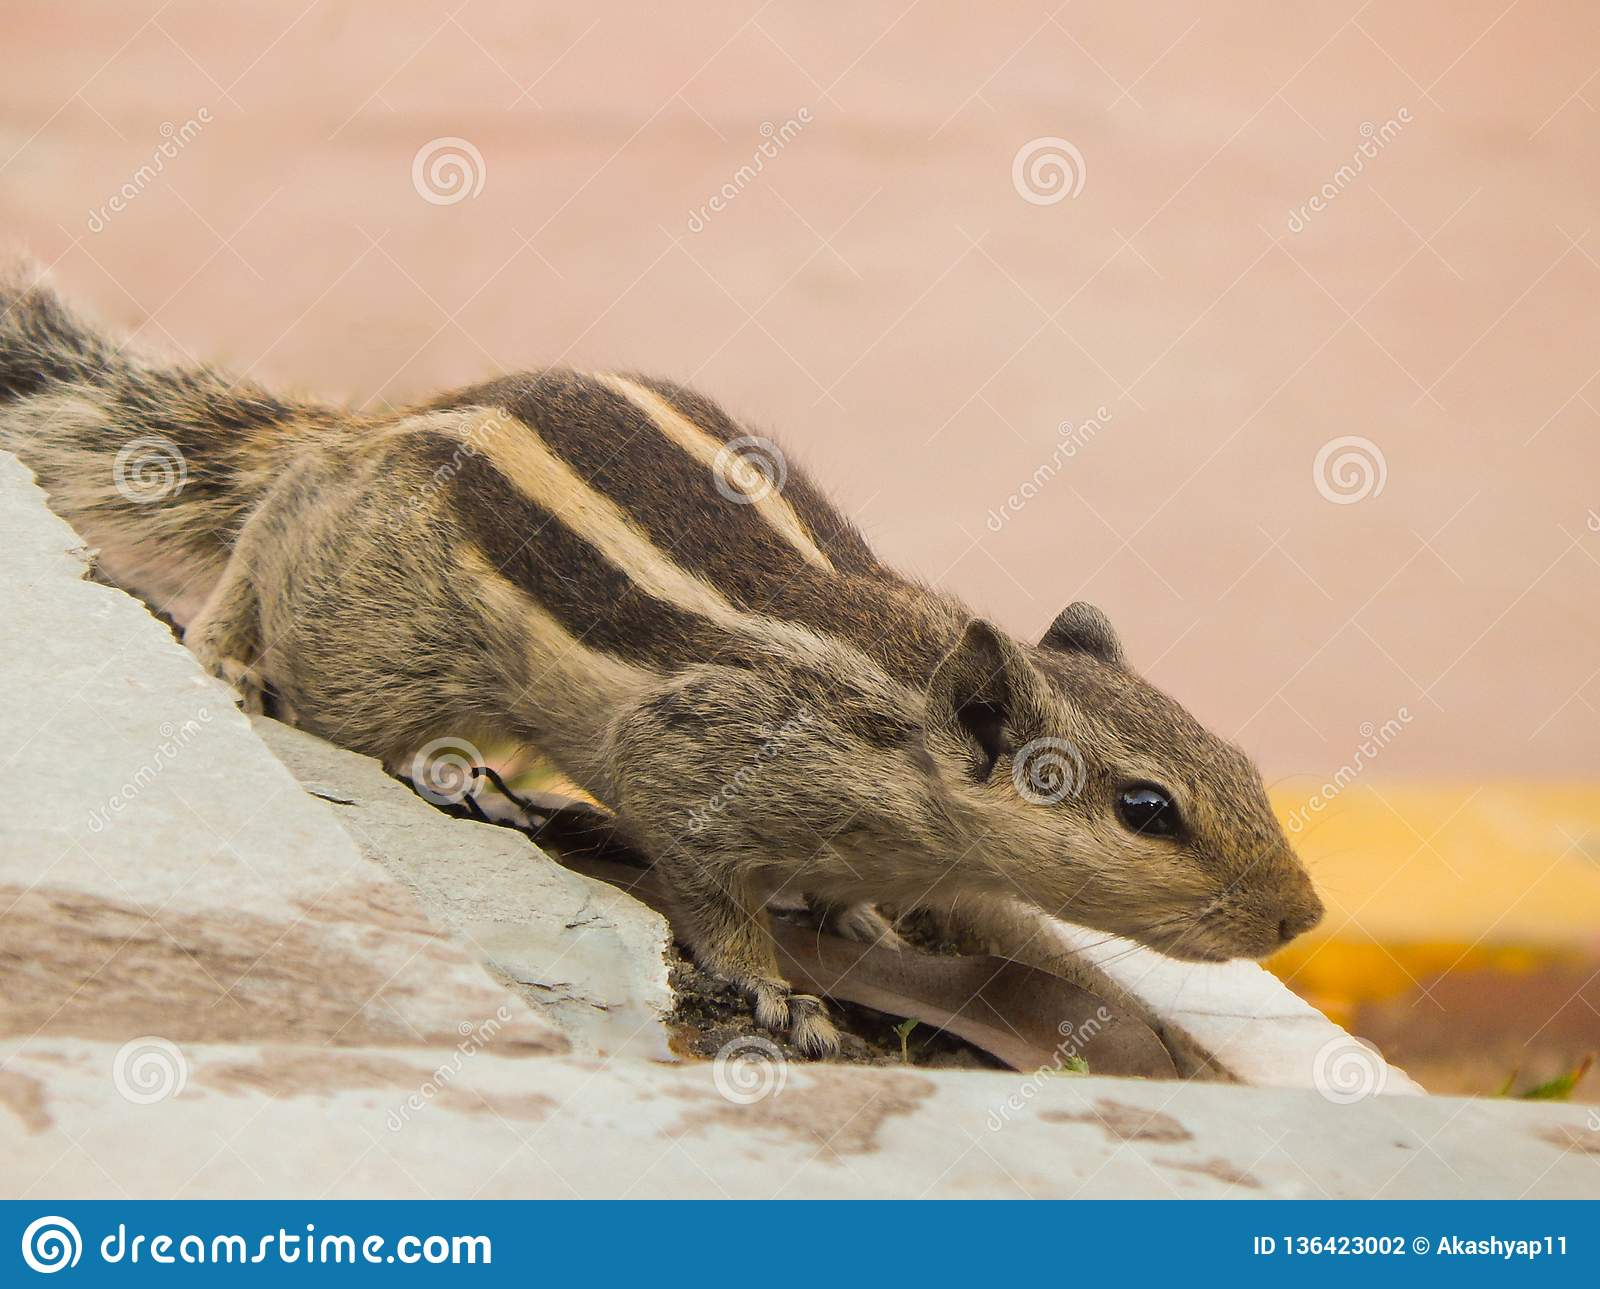 Indian palm squirrel having three stripes on a wall.